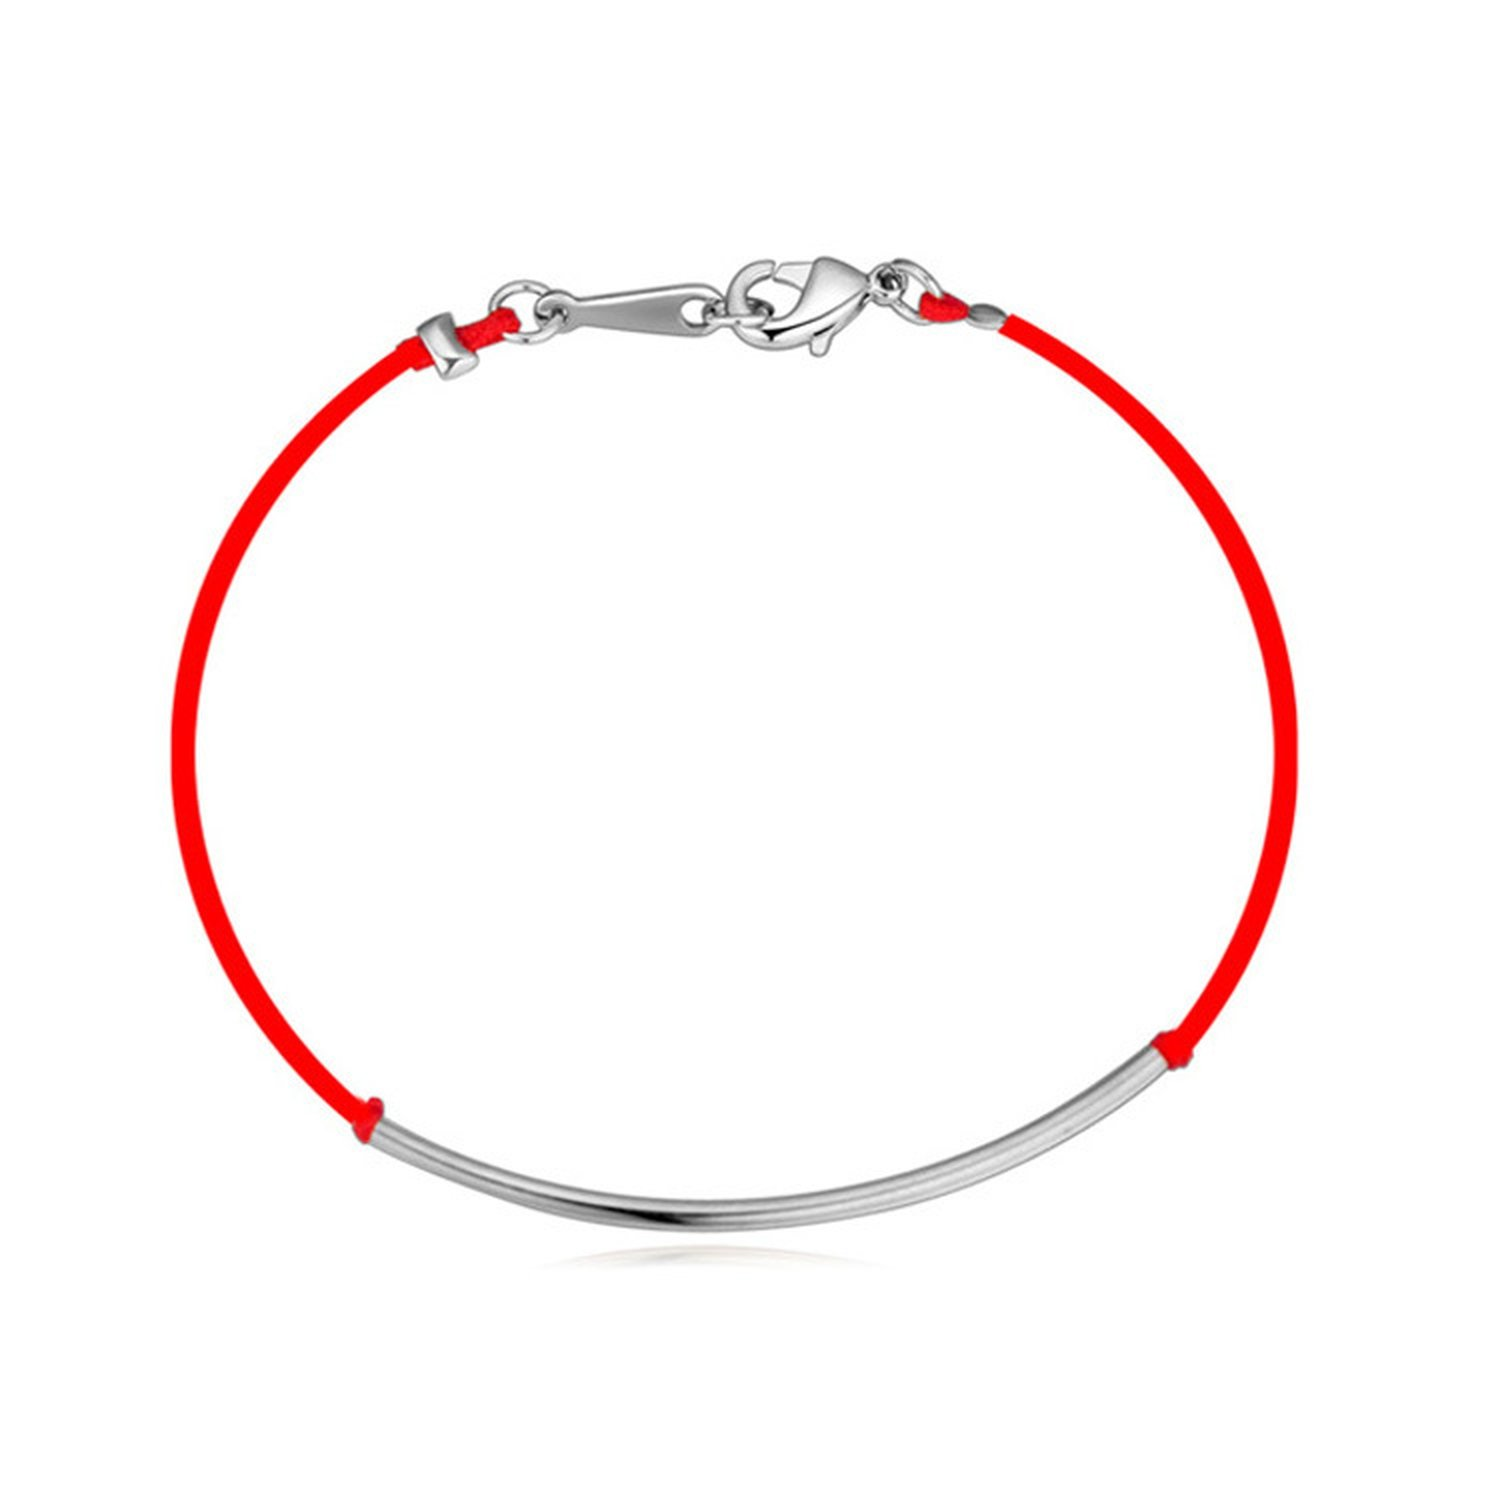 Flower-Bud born red rope braided bracelet high-end gold plated fine jewelry past and present Korean jewelry,Rose Gold by Flower-Bud (Image #6)